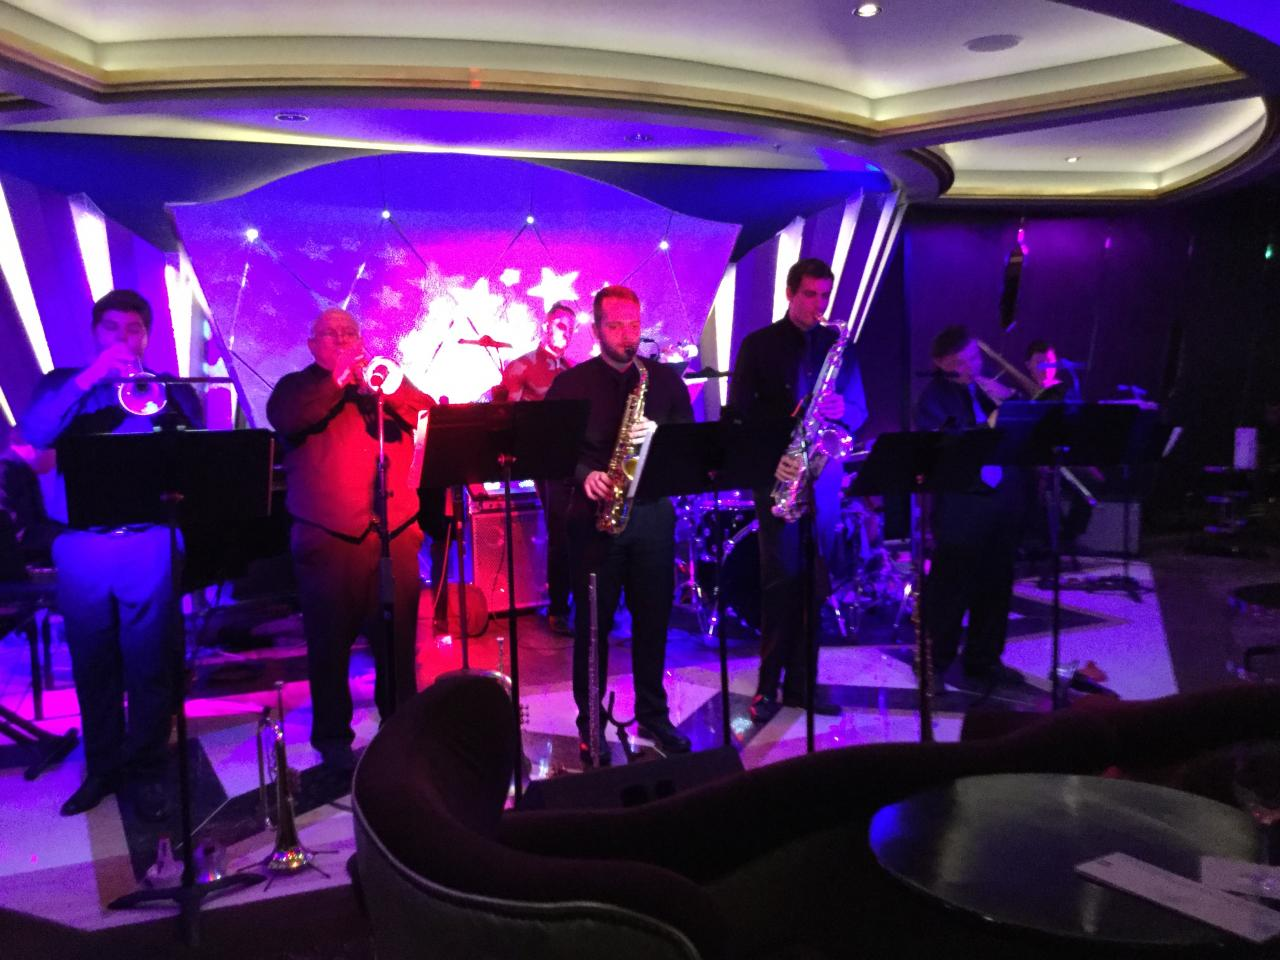 Carger Music International Musicians And Venues On Cruise Ships - Jazz cruise ships